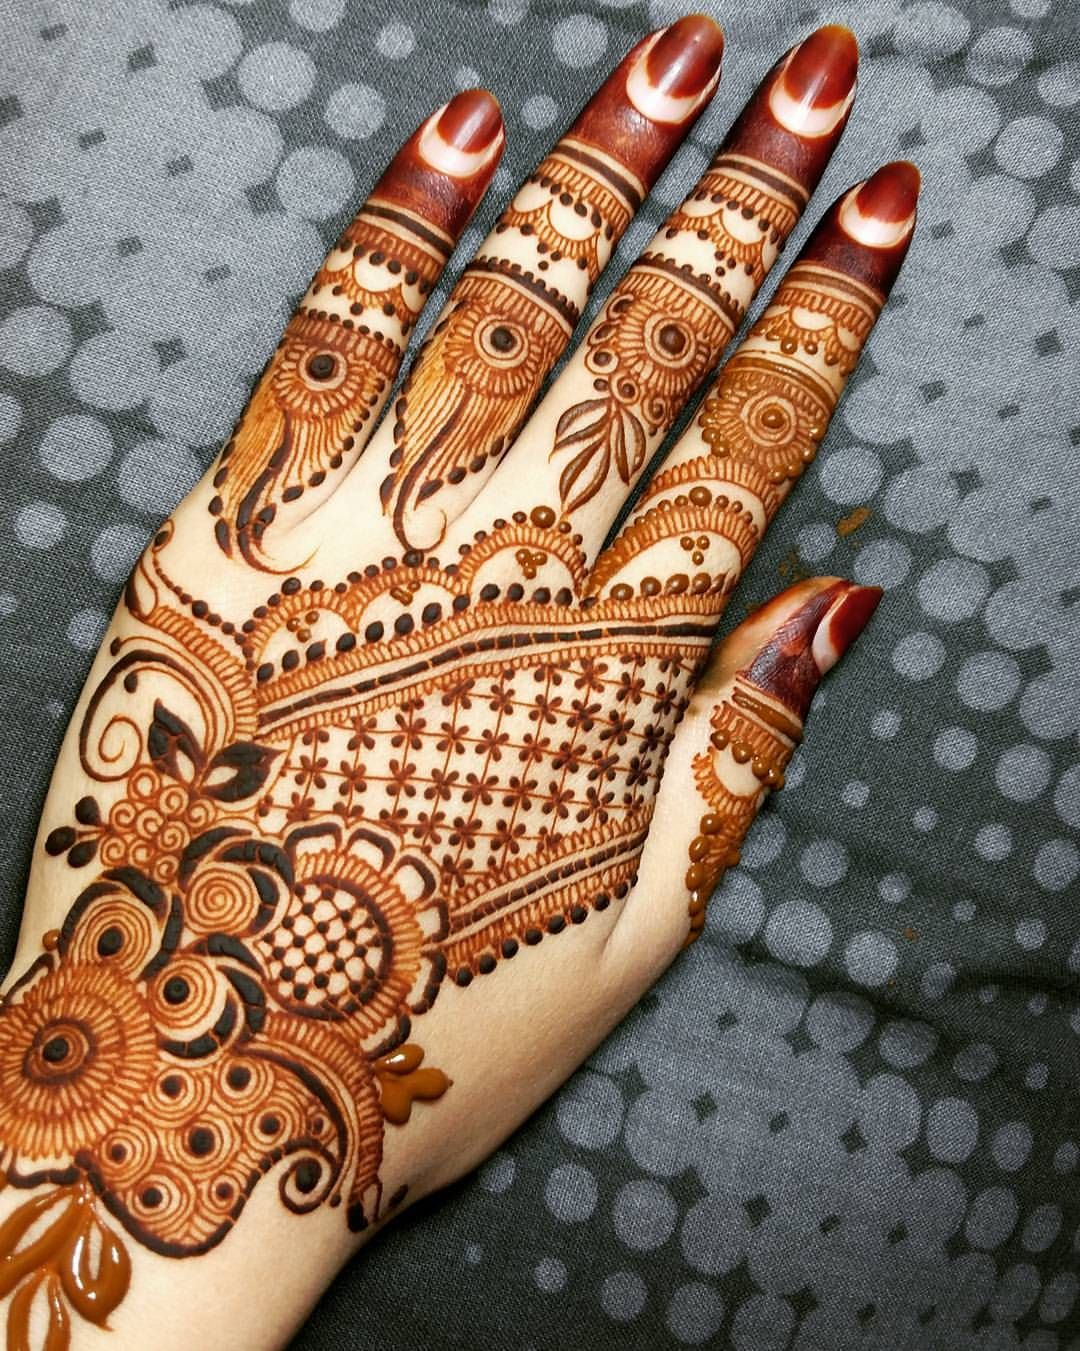 Late Night Henna Sc Nashwah Henna A Passionate Belief In Your Business And Personal Objectiv Mehndi Designs Latest Arabic Mehndi Designs New Mehndi Designs